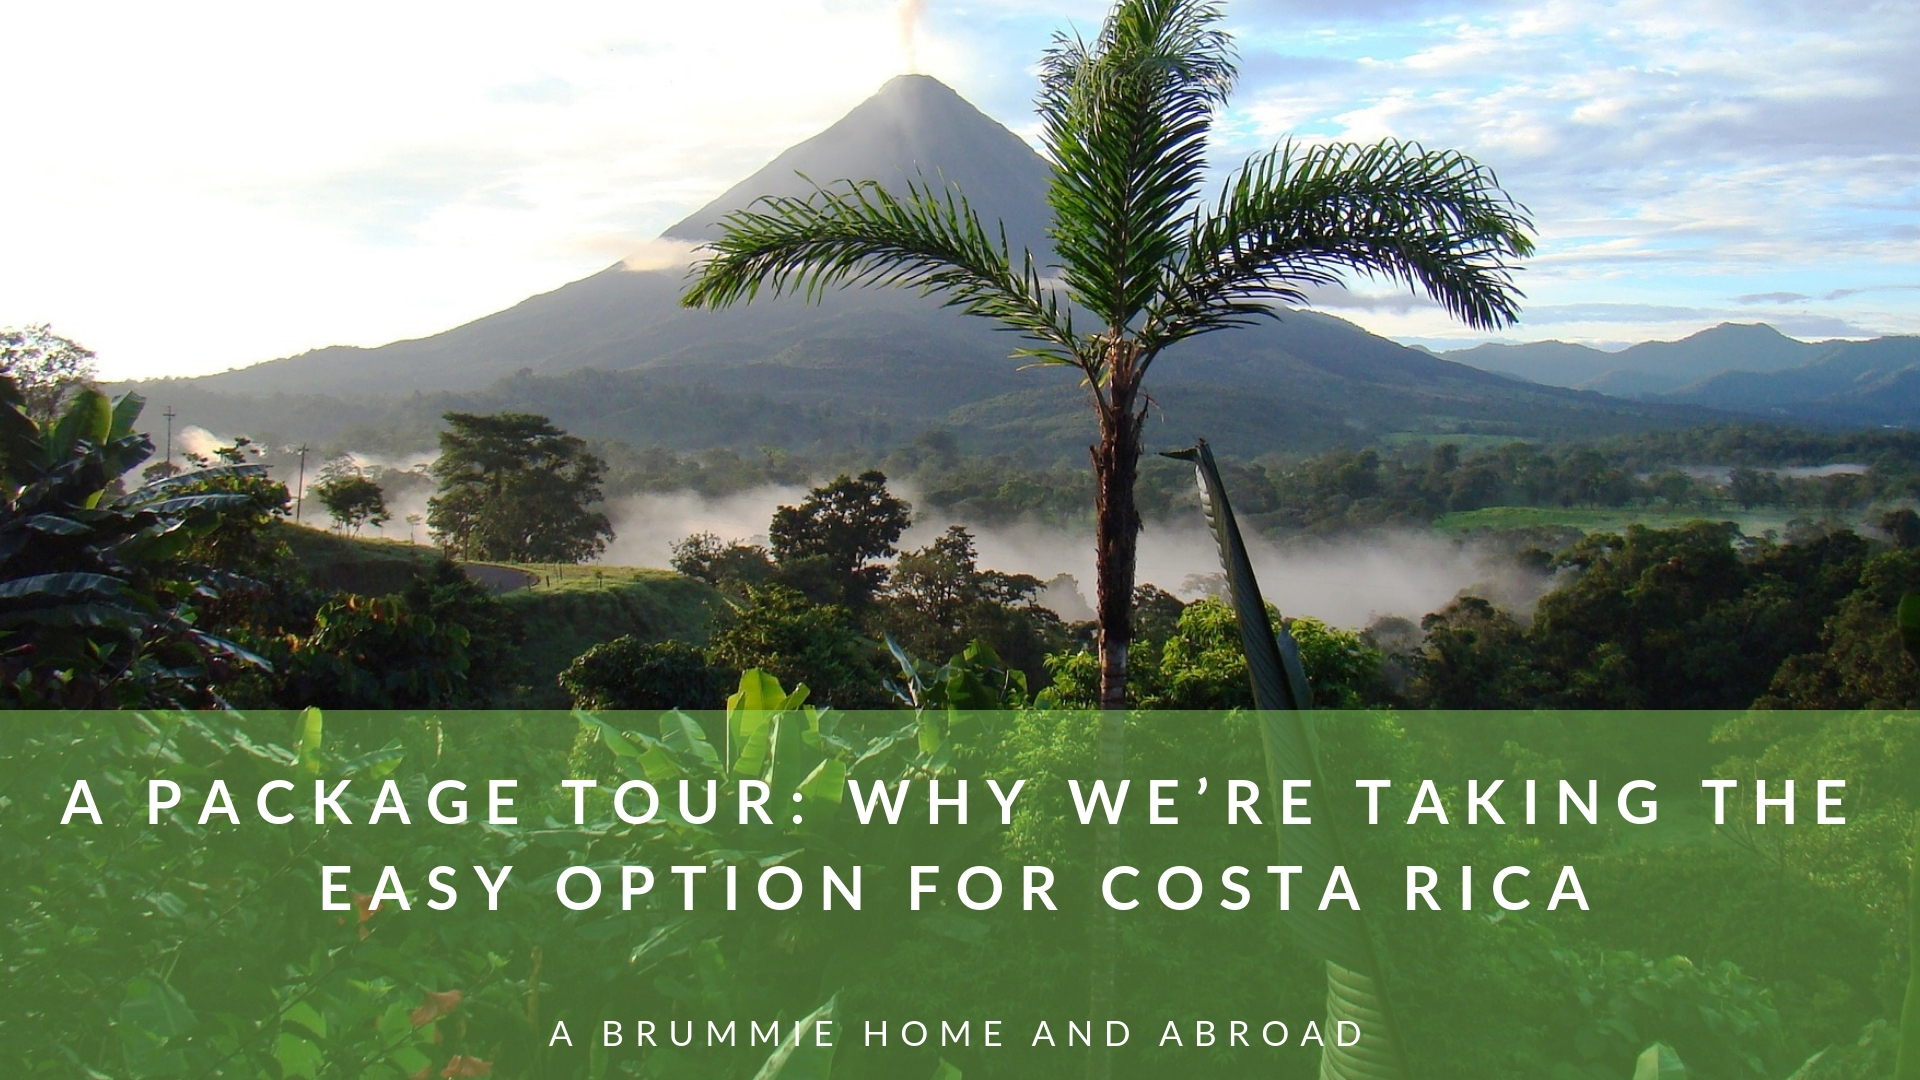 A Package Tour: Why we're taking the easy option for Costa Rica - A Brummie Home and Abroad